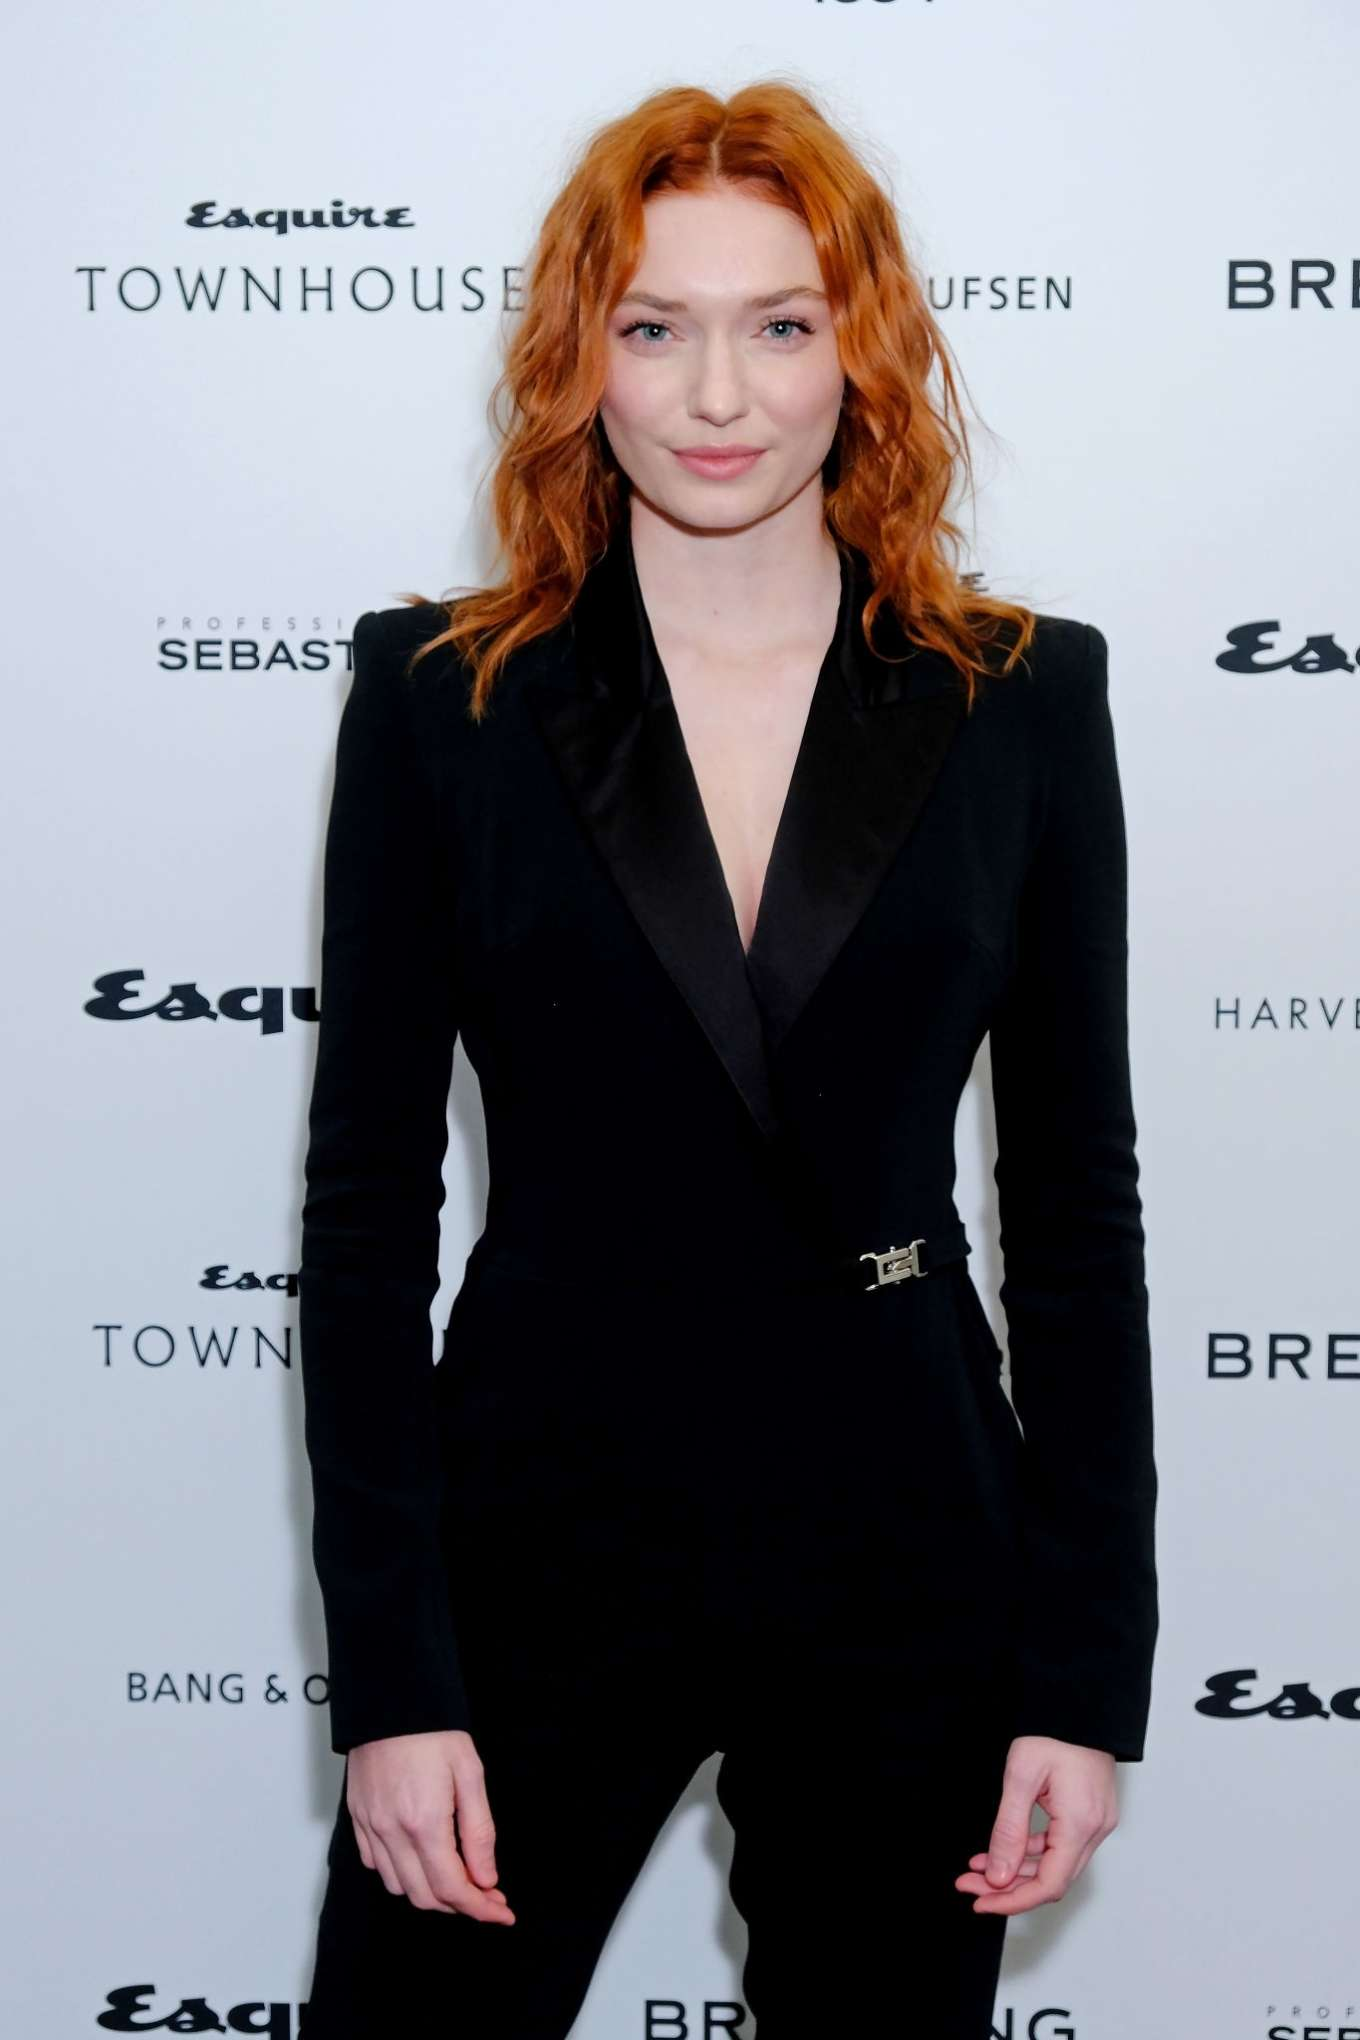 Eleanor Tomlinson - Esquire Townhouse with Breitling Launch in London